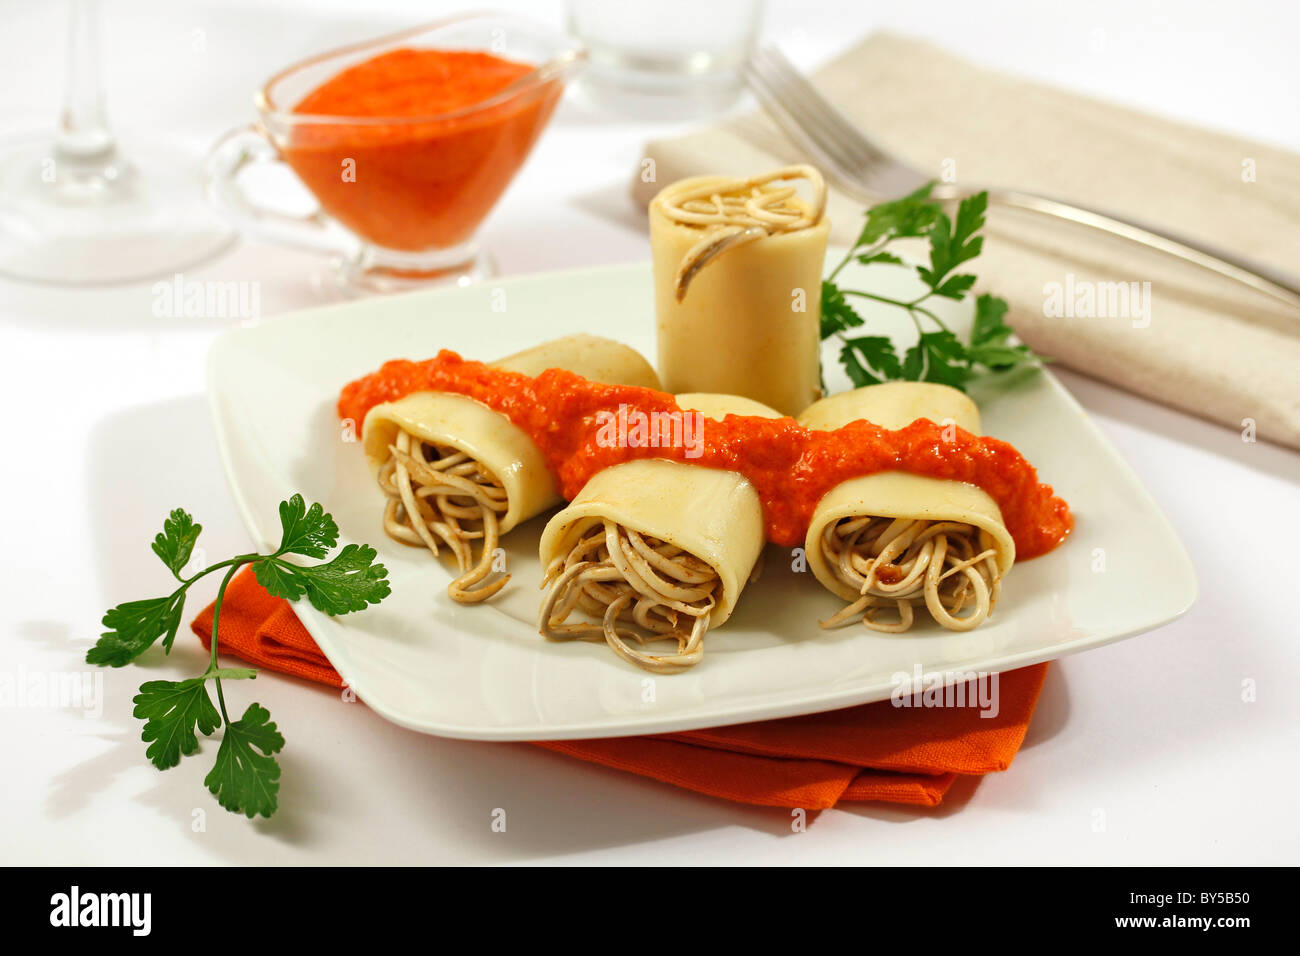 Stuffed pasta with small eels (substitute). Recipe available. - Stock Image